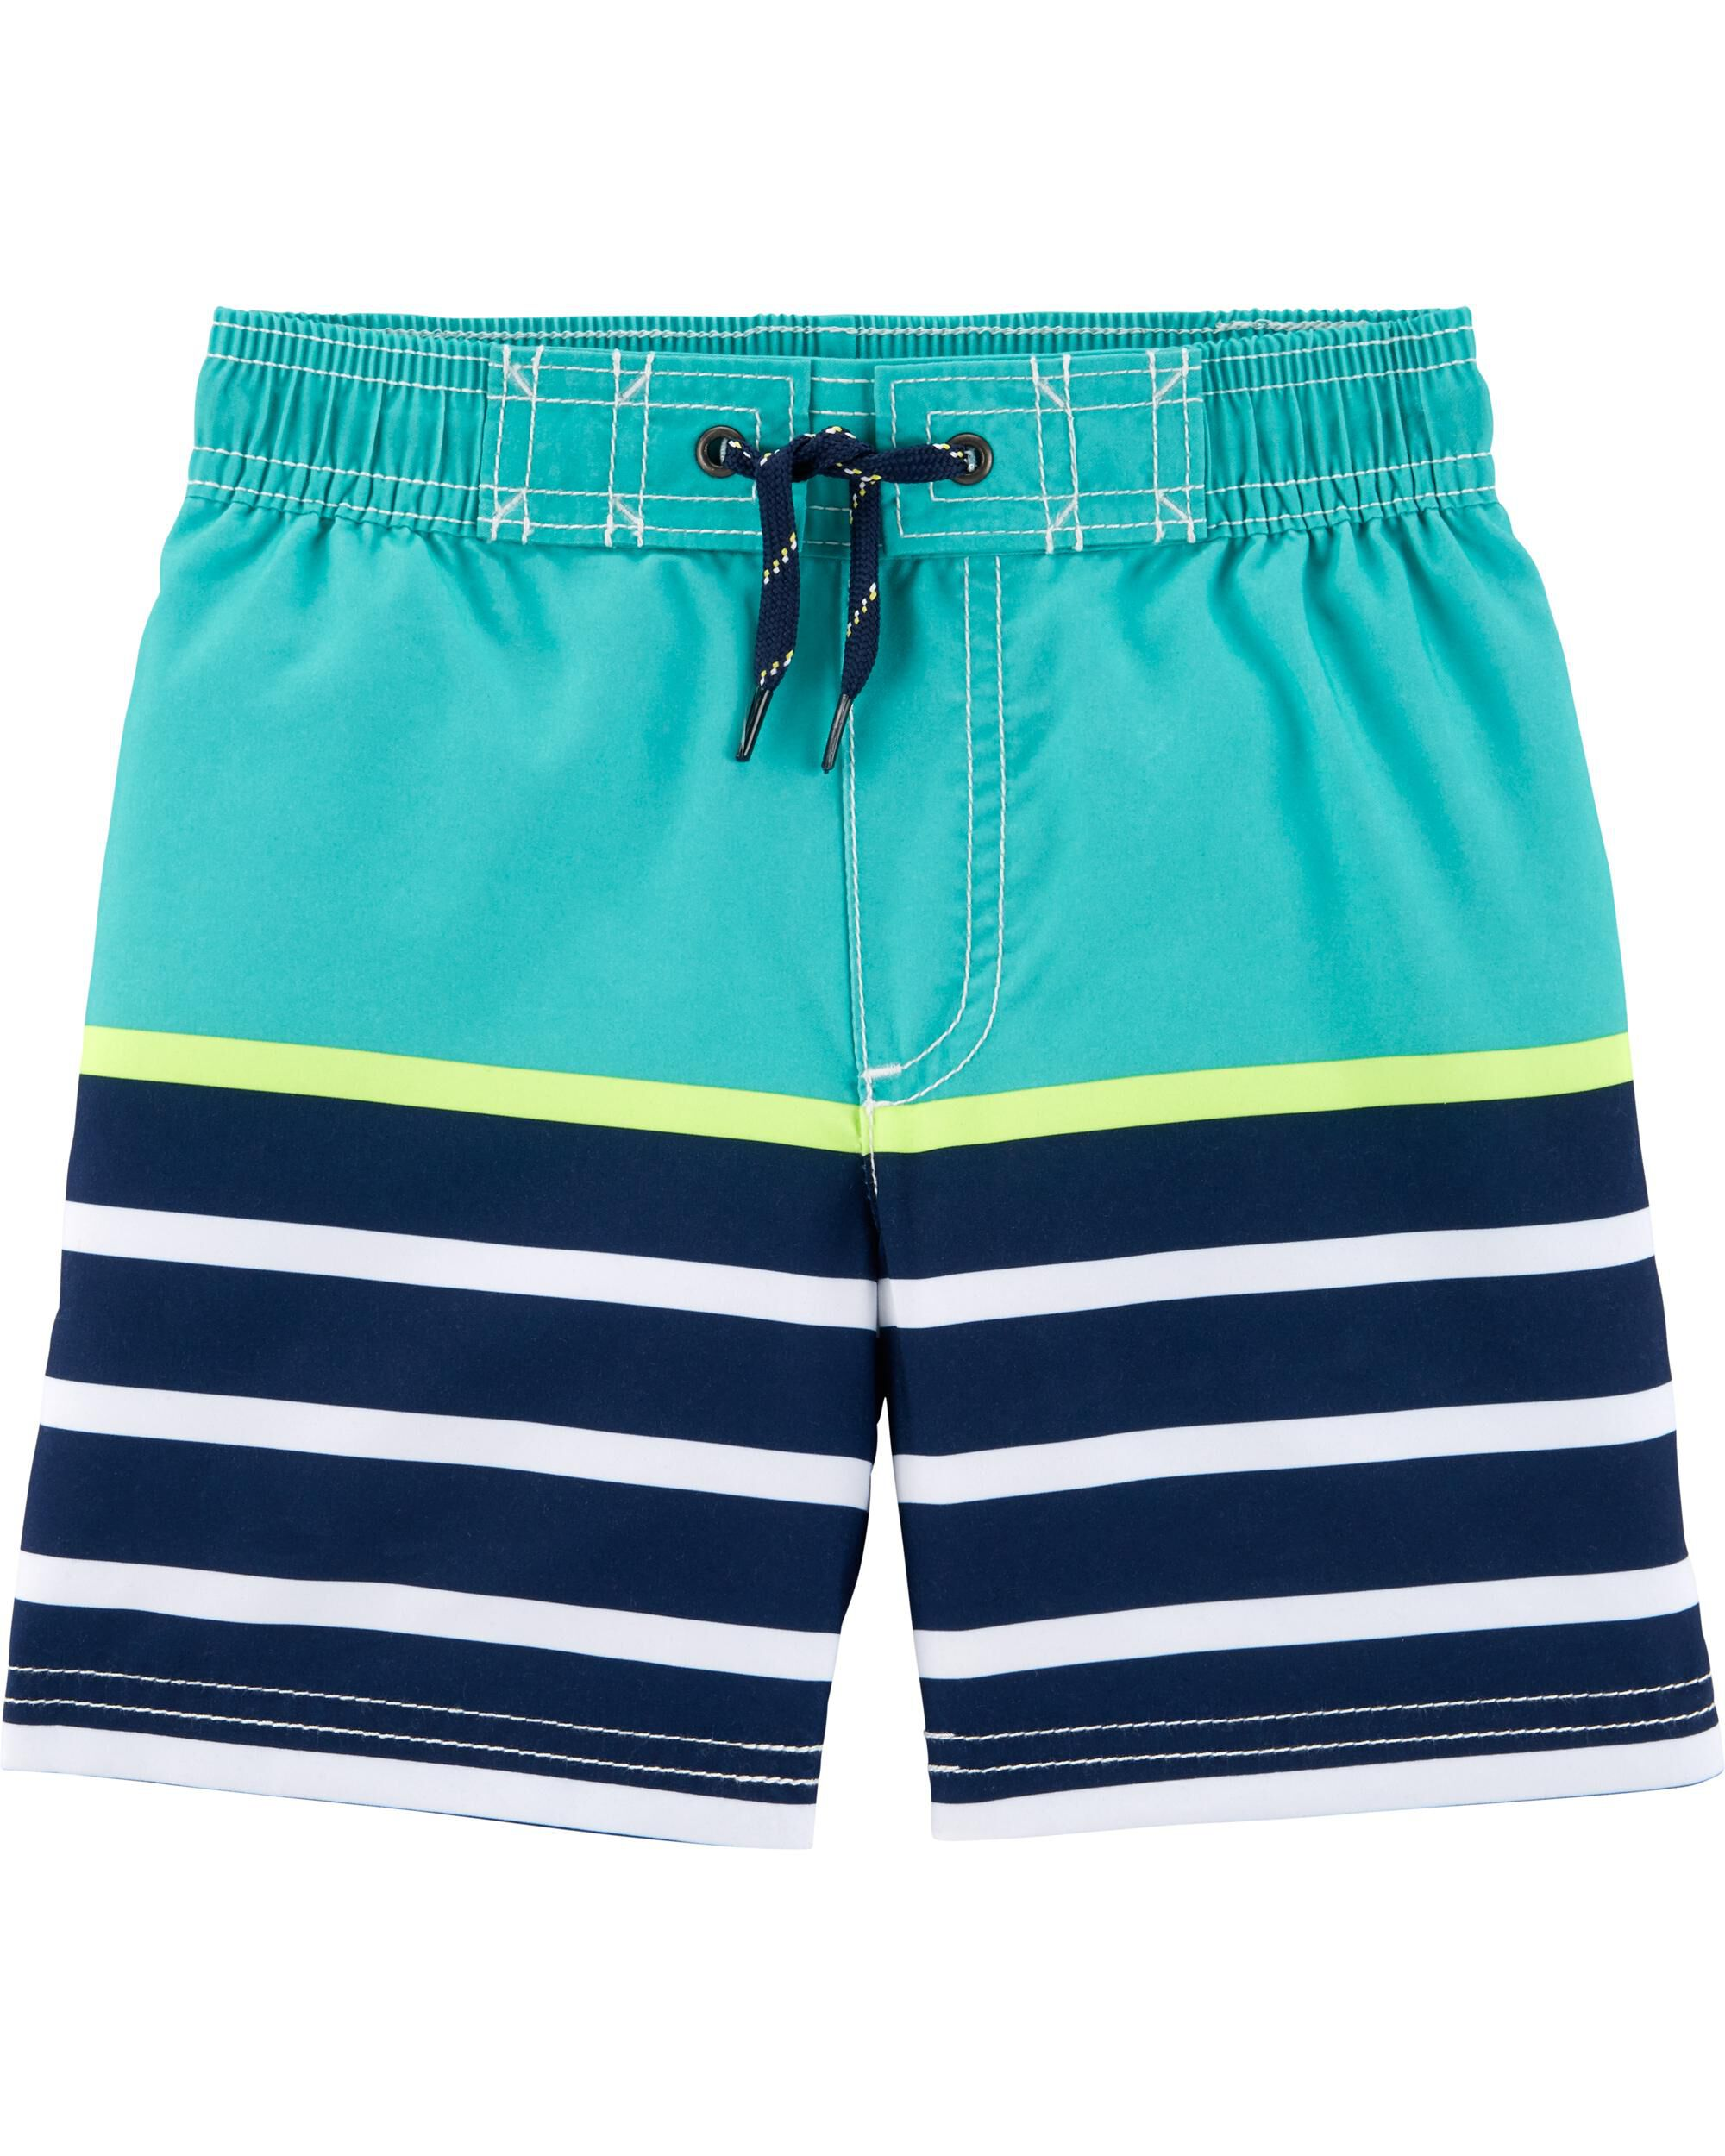 e76b5c211a Carter's Striped Swim Trunks | Carters.com